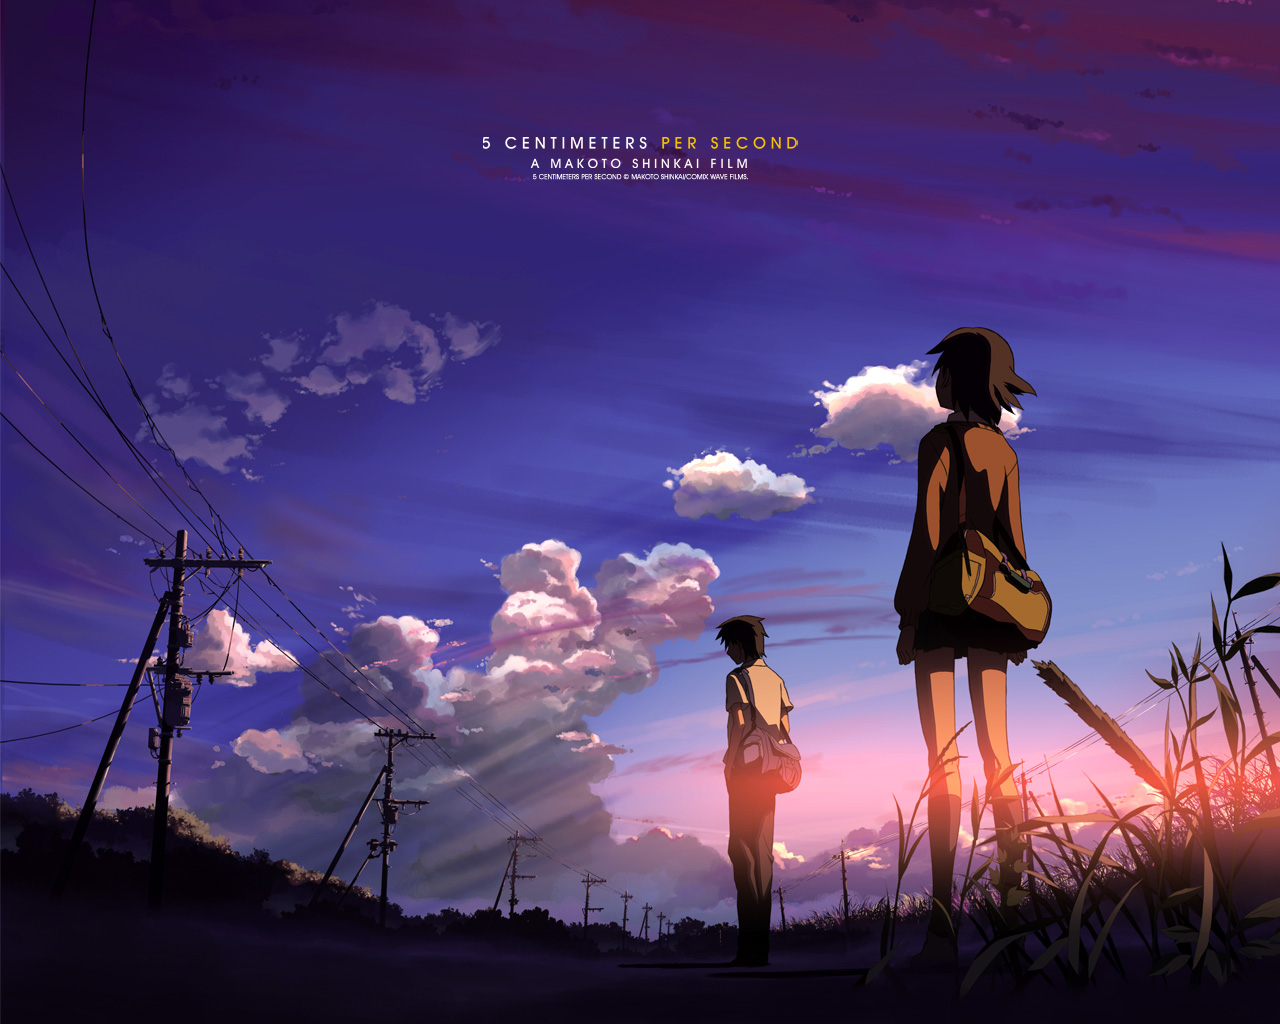 Review movie 5 centimeters per second